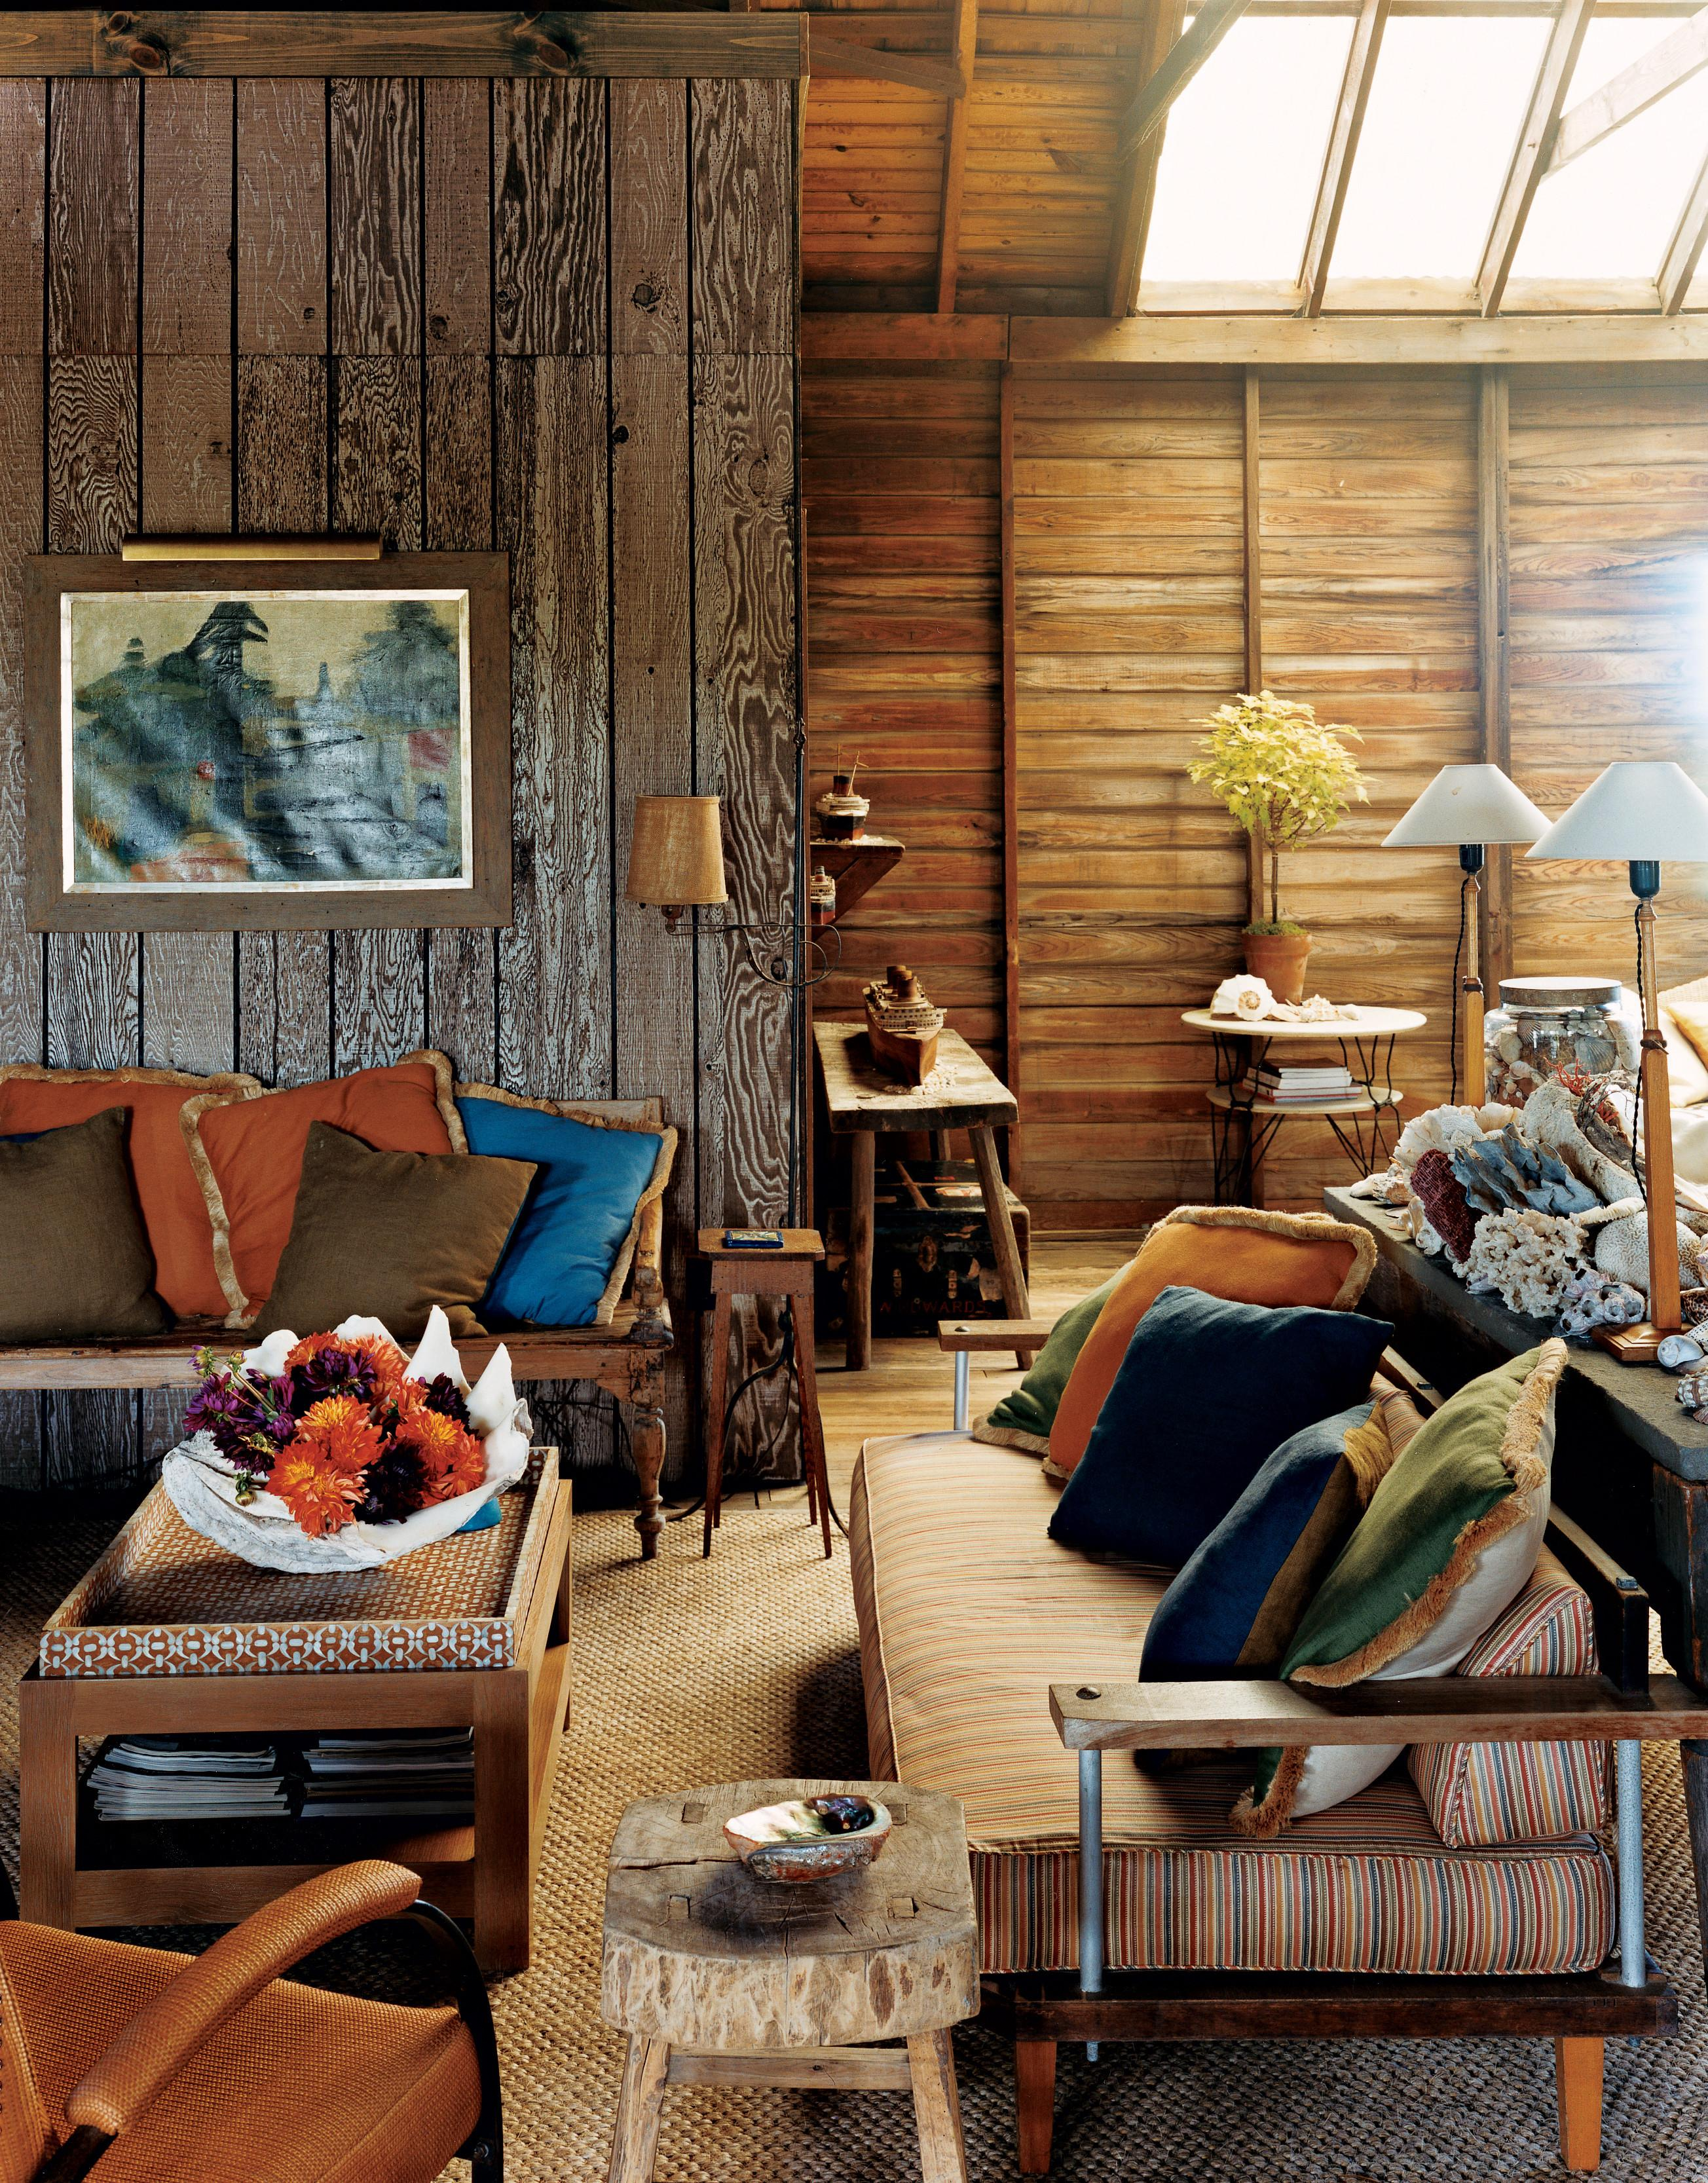 Small Spaces Rustic Living Room Design Wood Wall Old